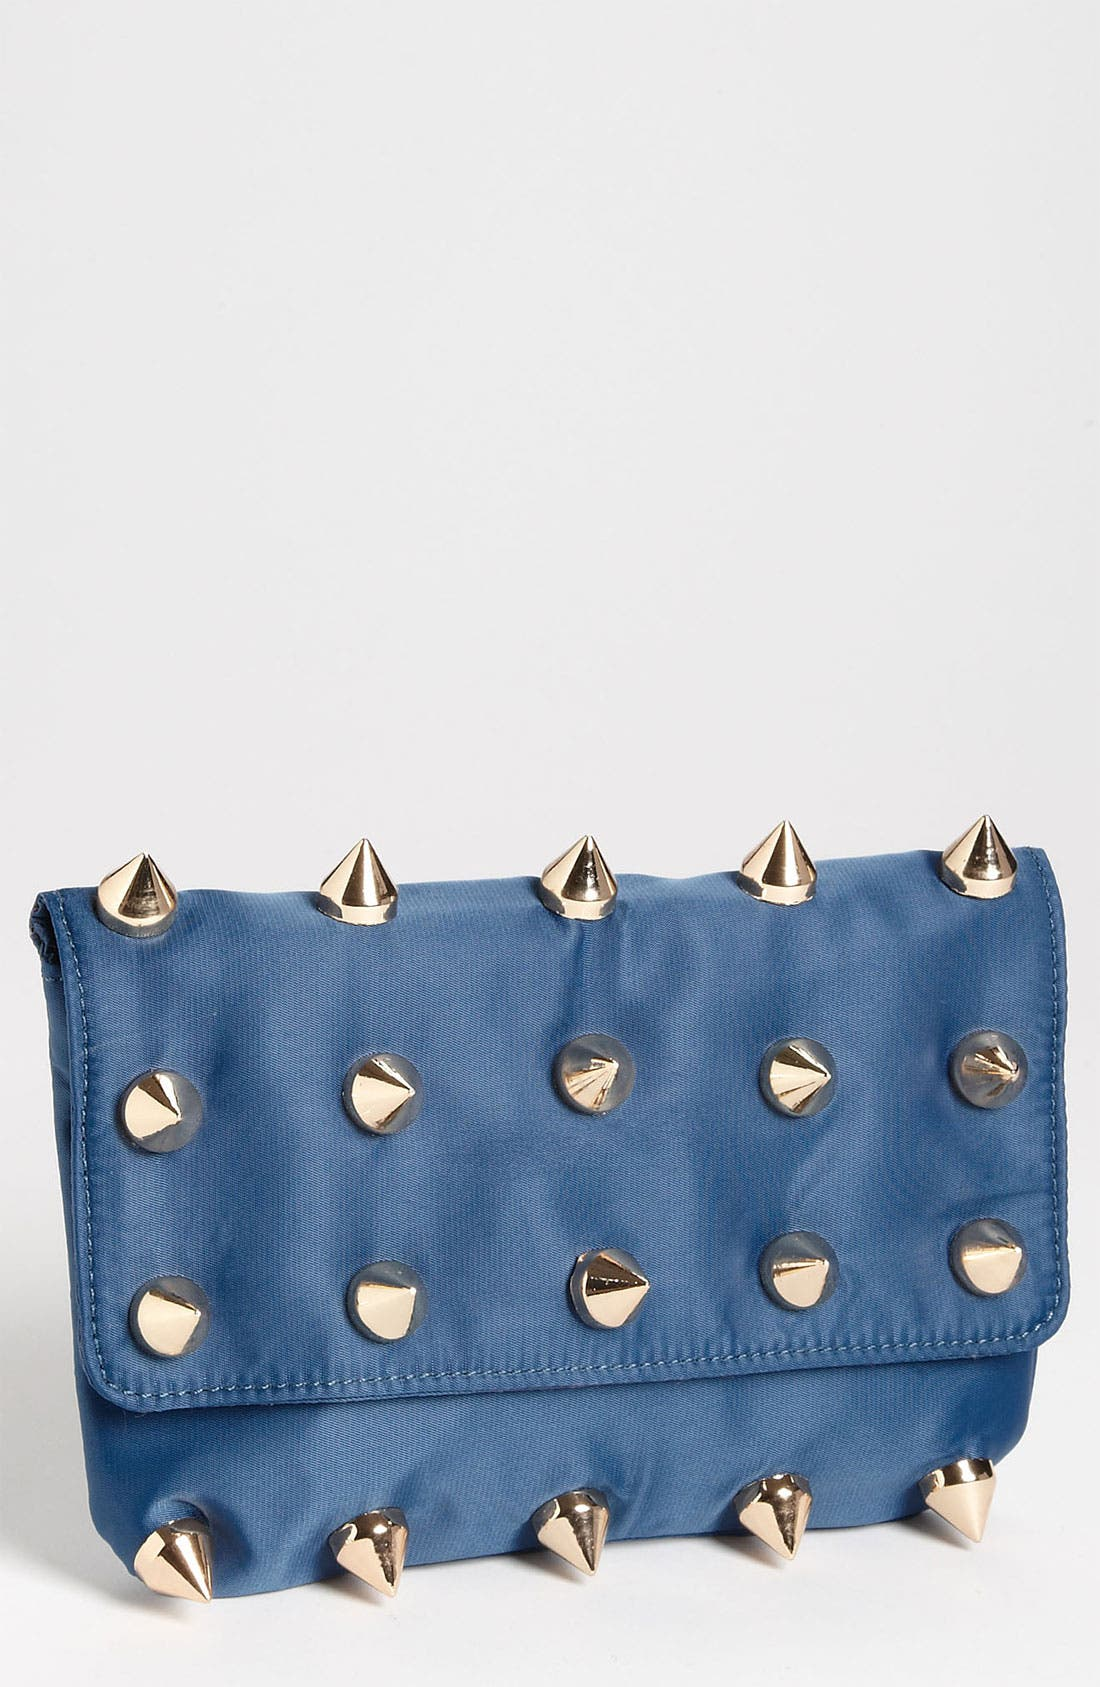 Alternate Image 1 Selected - Deux Lux 'Empire' Nylon Clutch